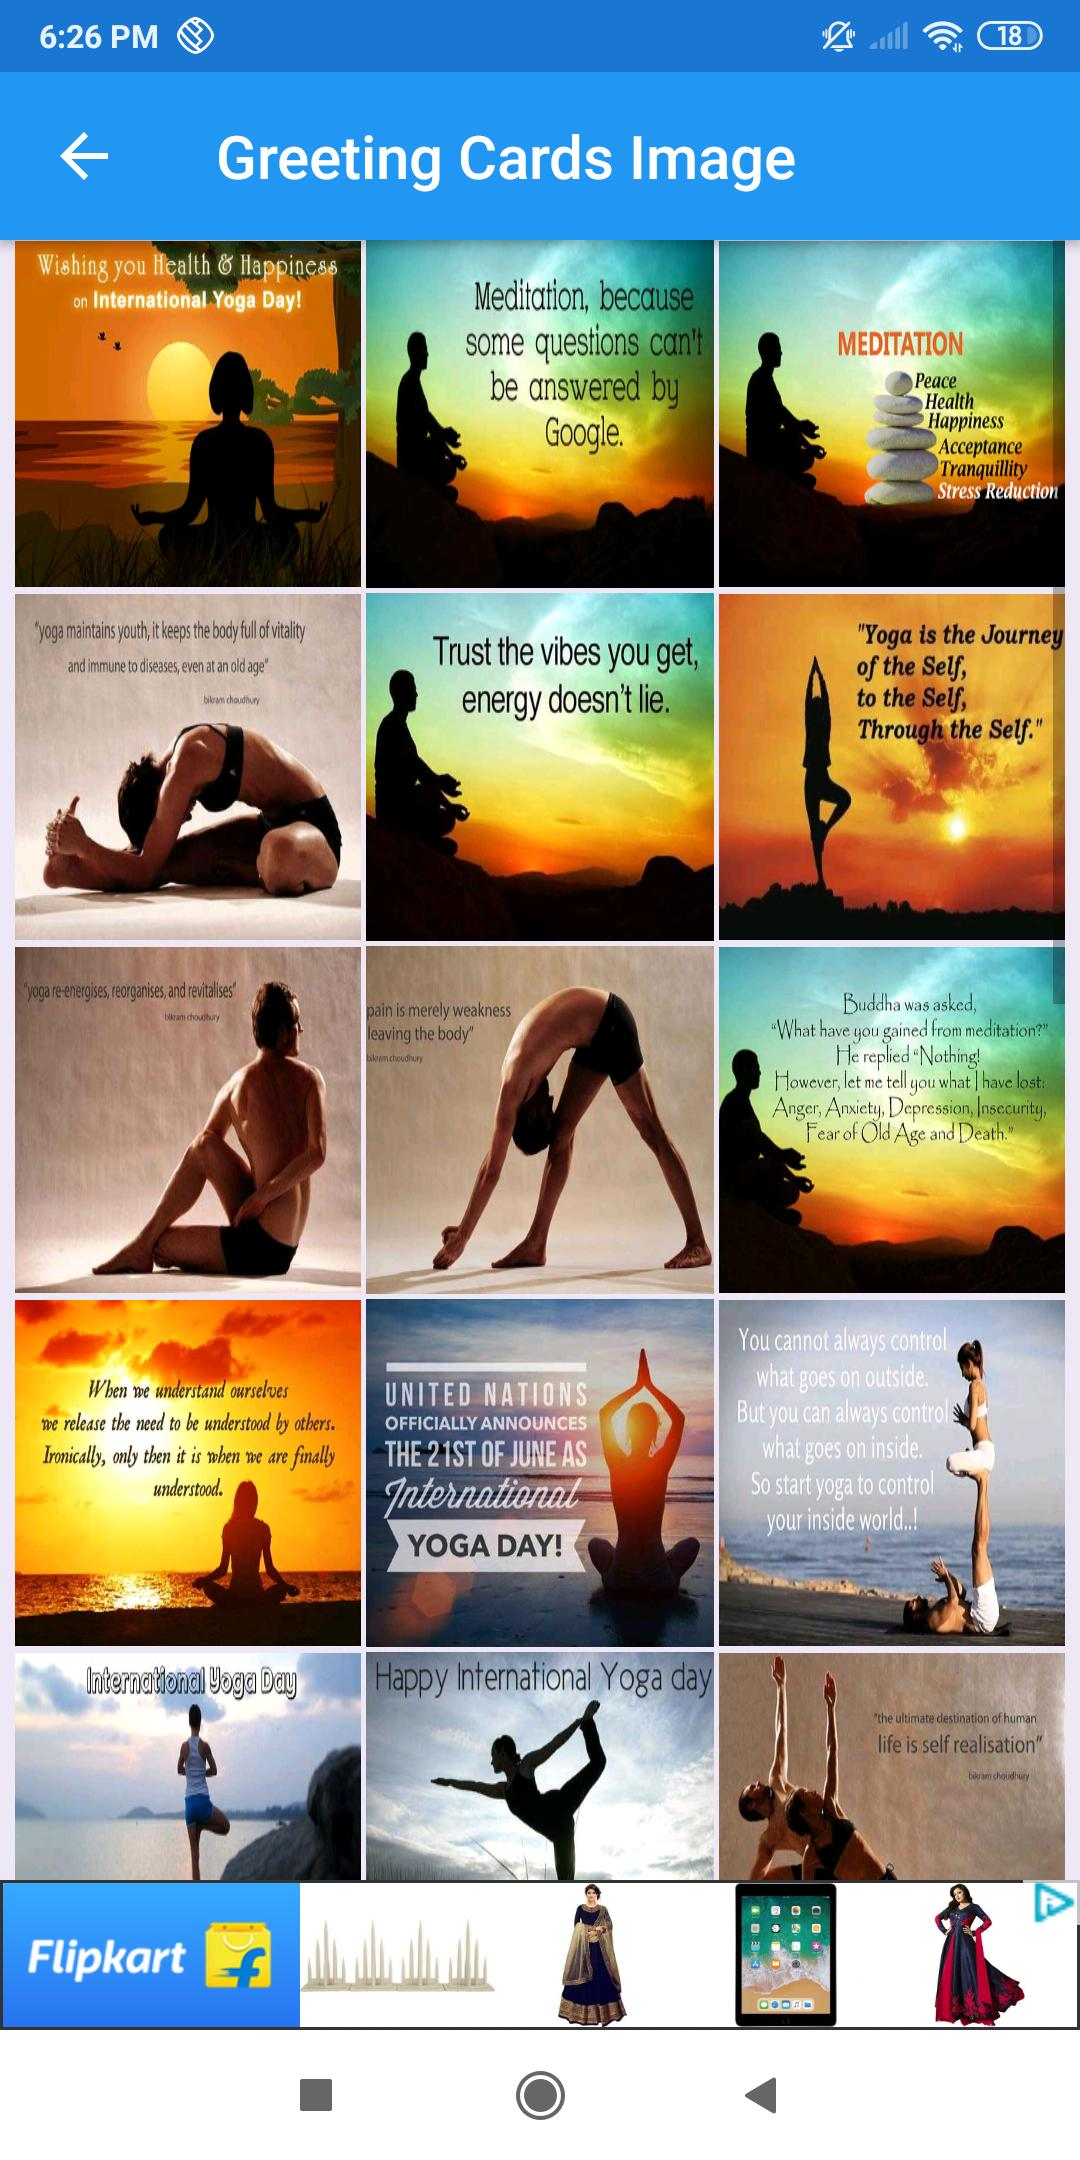 International Yoga Day Greeting Wishes Quotes Gif For Android Apk Download